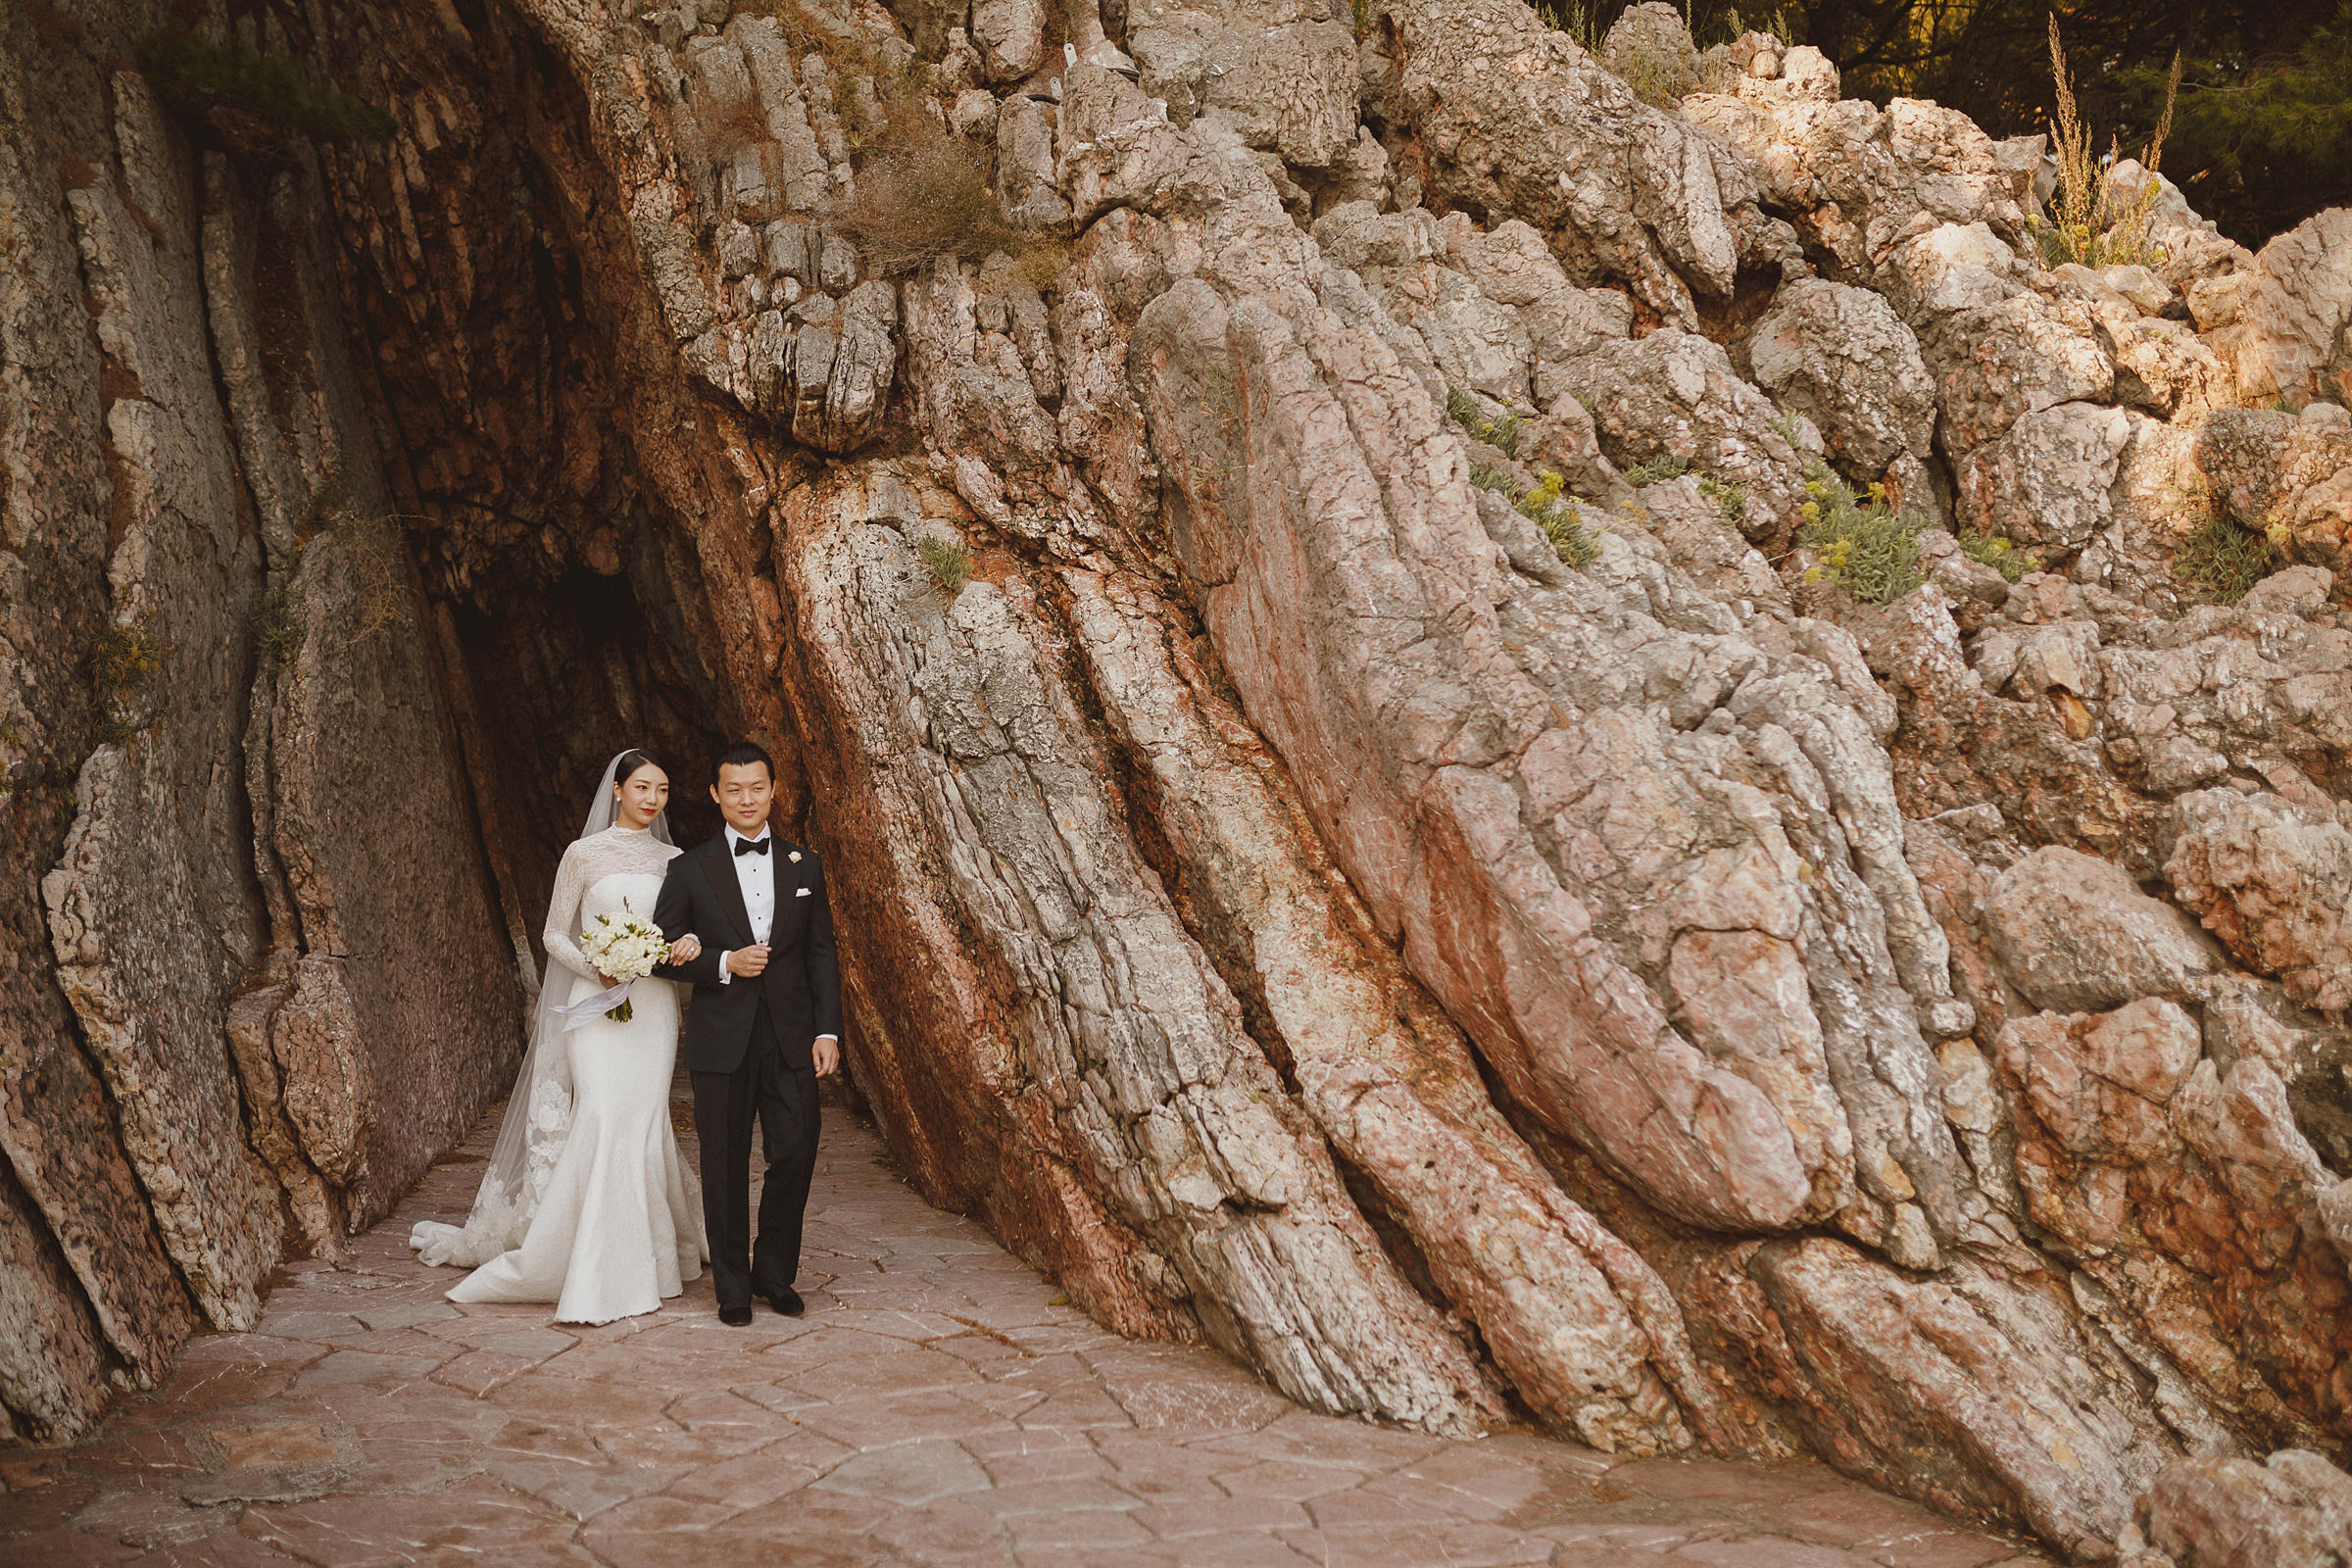 couple-against-craggy-cave-ed-peers-photography